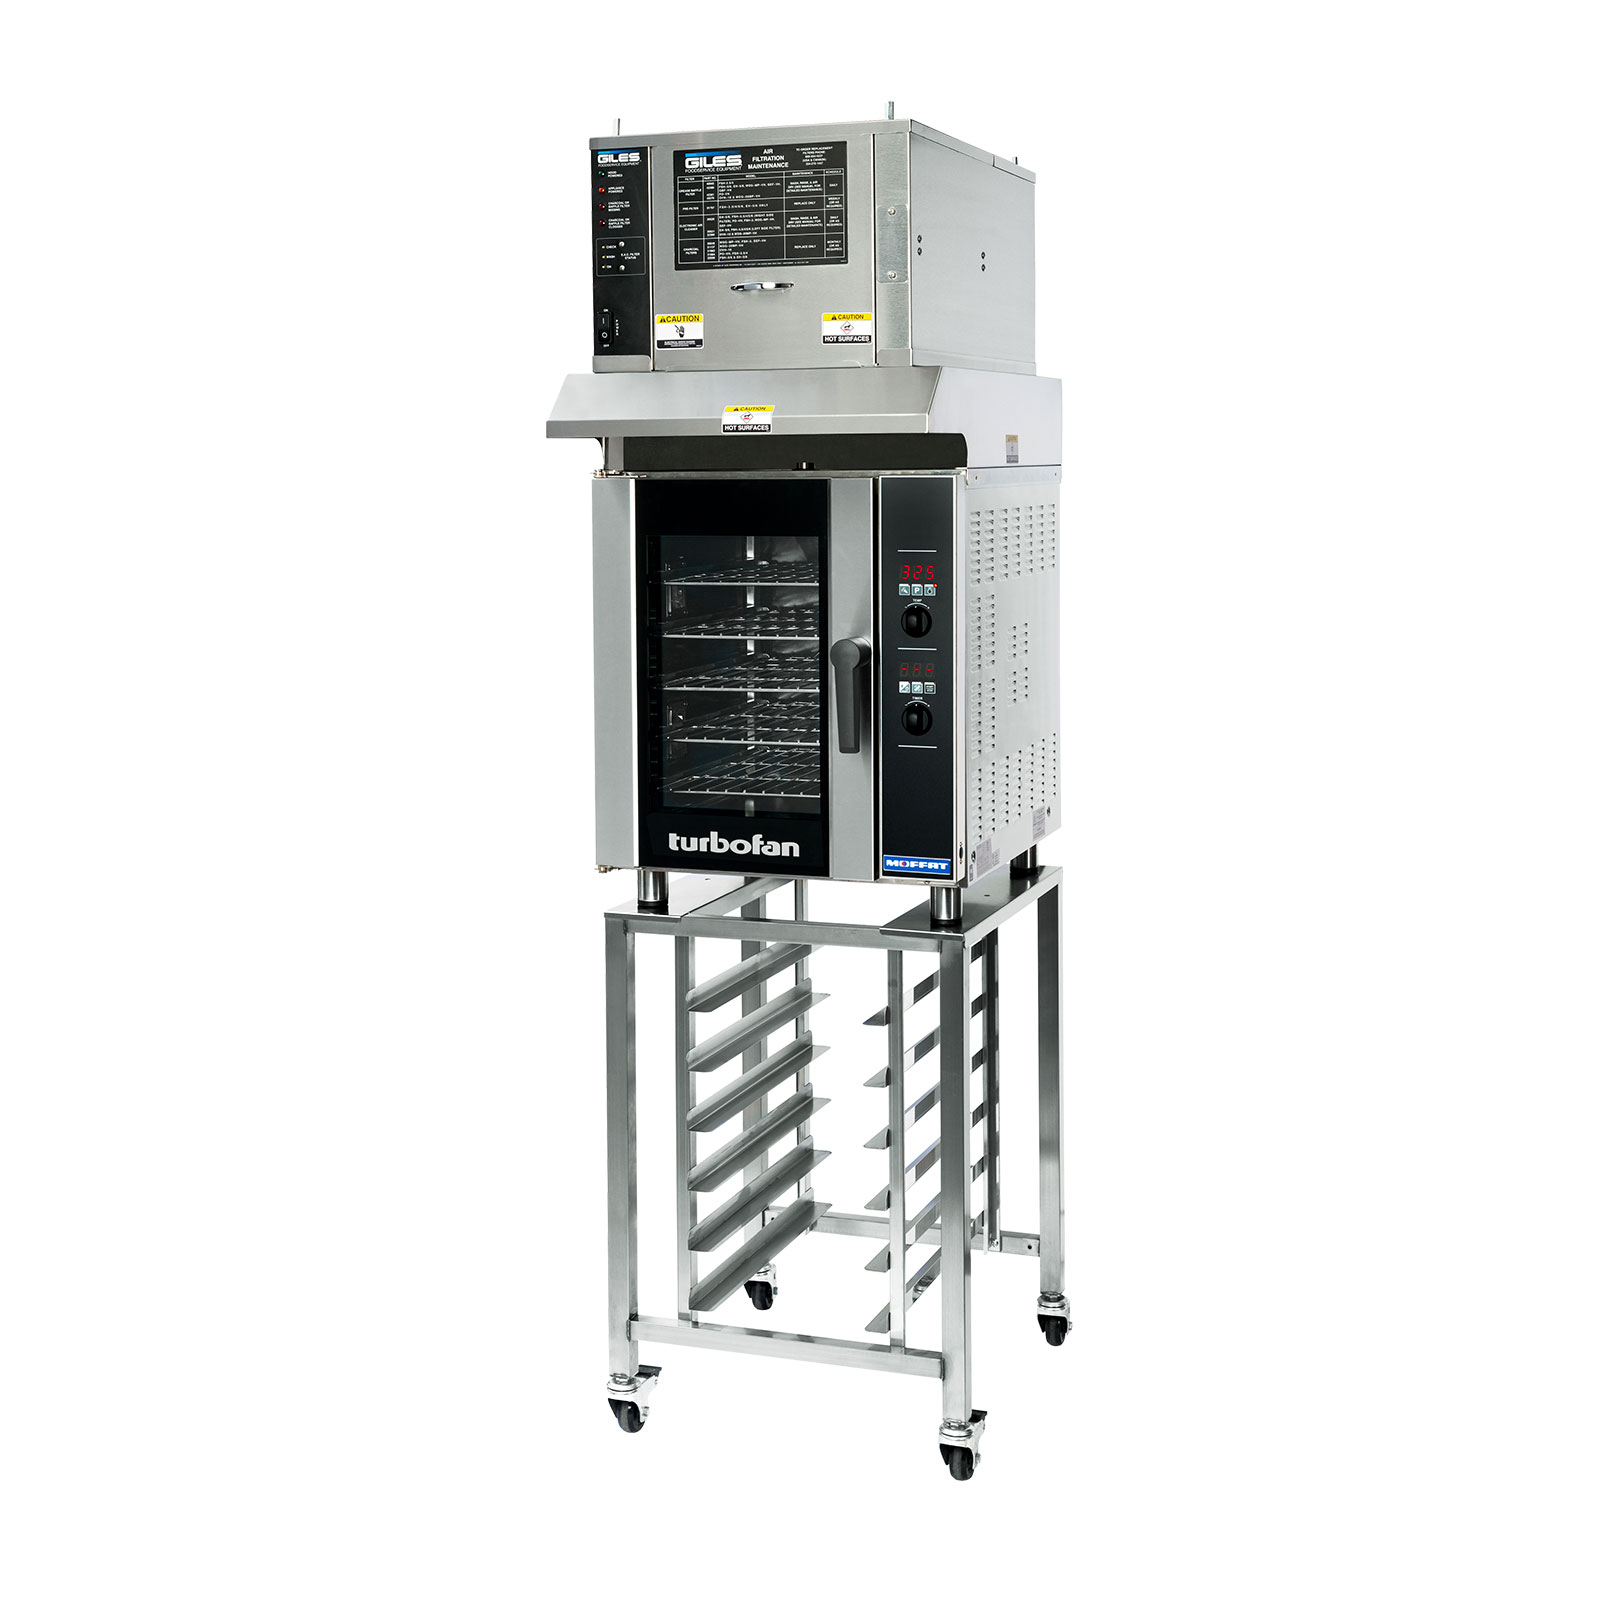 Moffat E33D5/OVH33/SK33 convection oven, electric